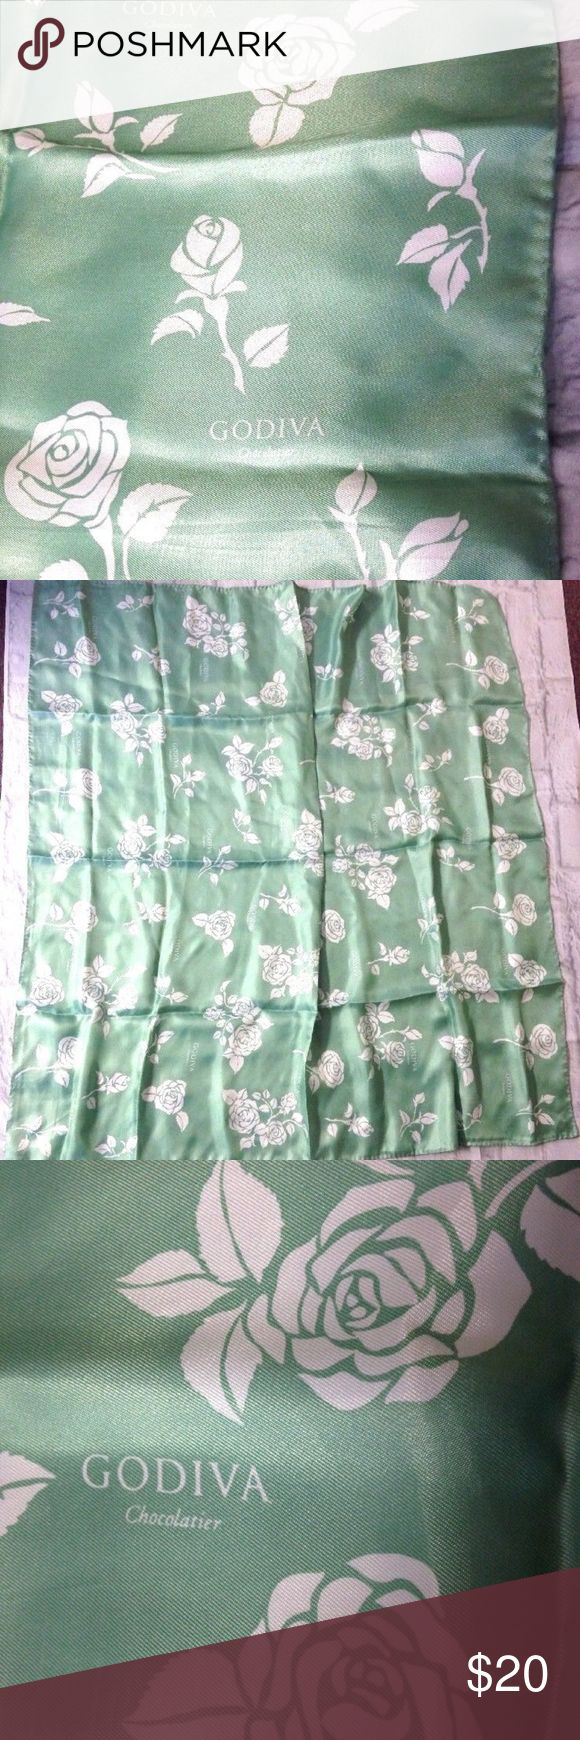 GODIVA CHOCOLATIER 34'' SQUARE SCARF mint green NICE GODIVA CHOCOLATIER 34'' SQUARE SCARF  SILKY POLYESTER FABRIC MINT GREEN & WHITE COLORS  EXCELLENT CONDITION, LOOKS UNWORN  SEE PICTURES FOR DETAILS  Contact me if you have any questions godiva Accessories Scarves & Wraps